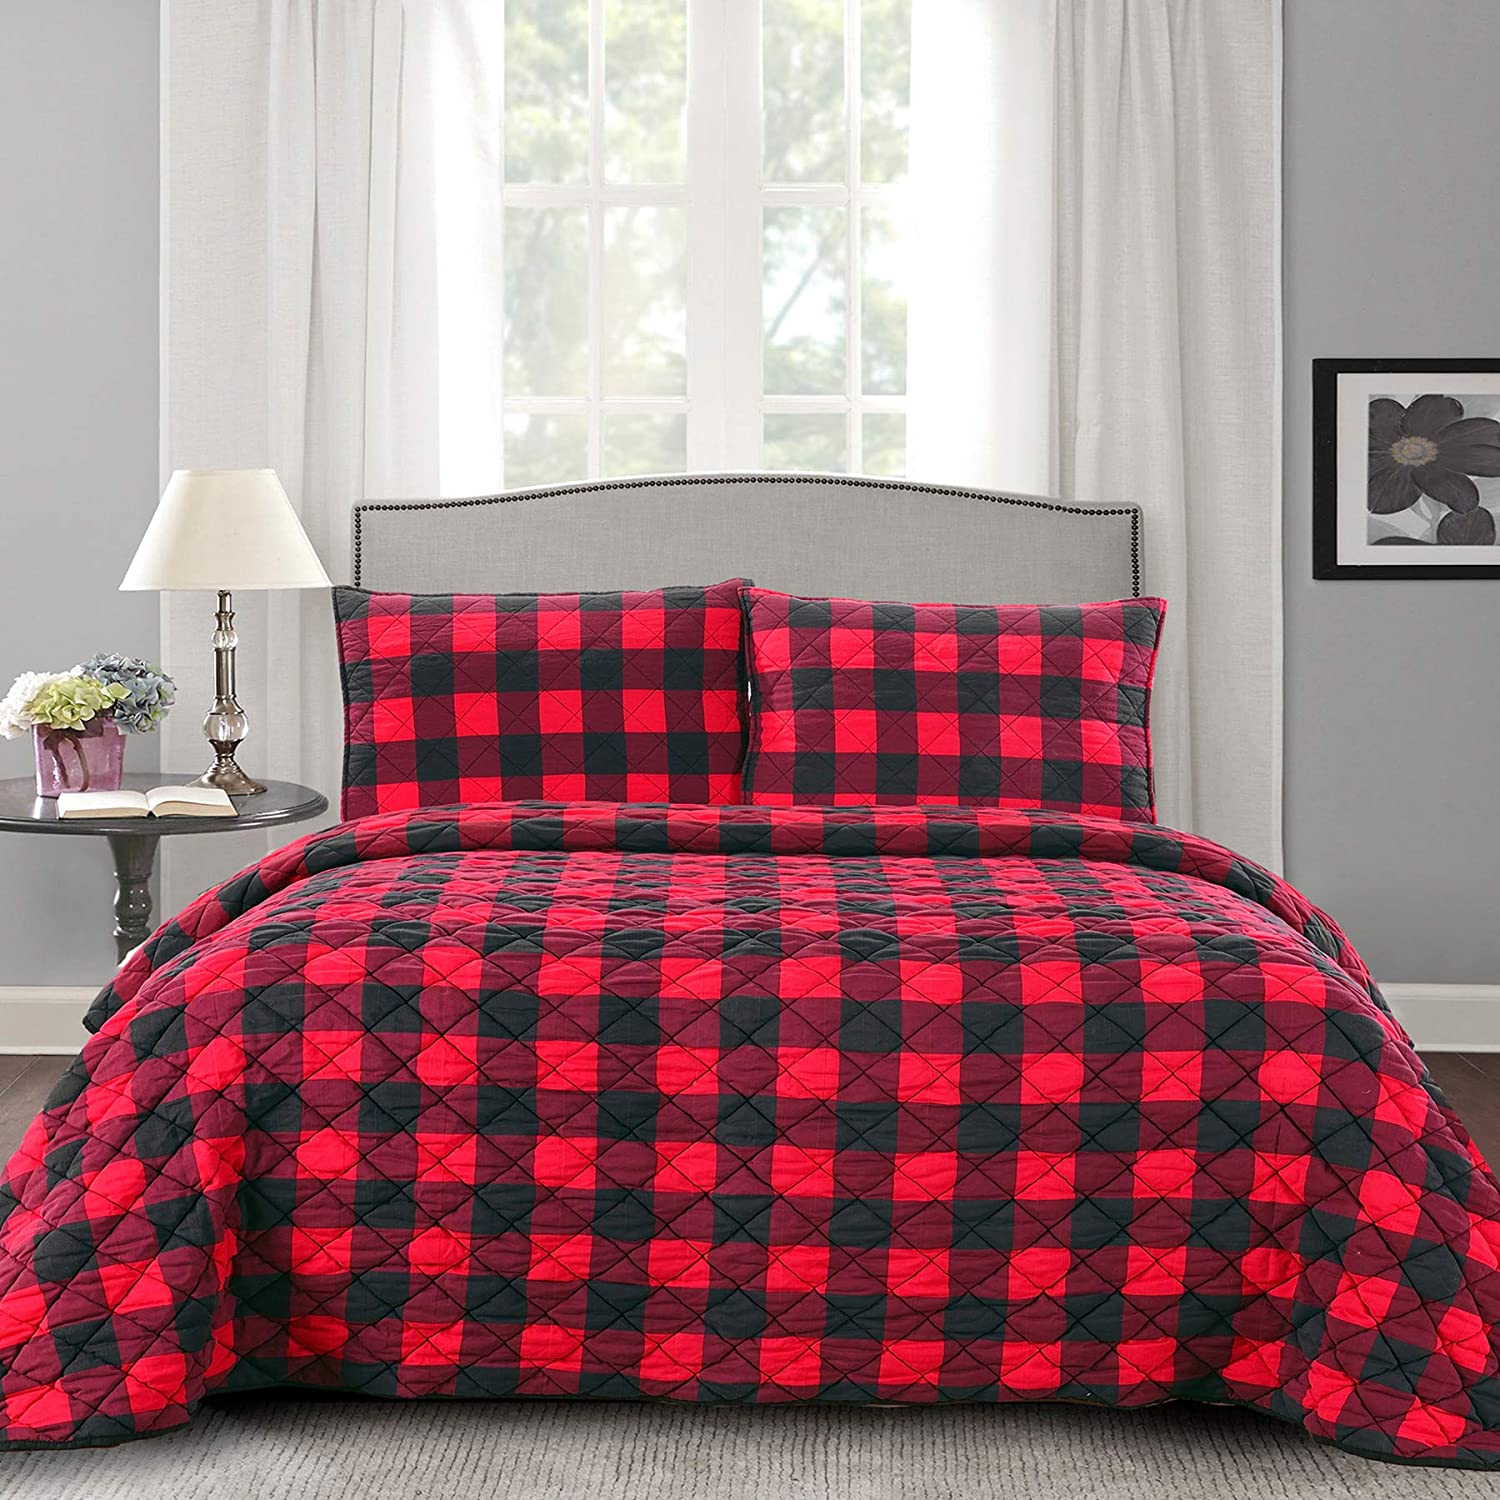 Sweet Home Collection Quilts Queen Size 3 Piece Set Vintage Pre Wash Buffalo Check Oversized Reversible Pattern with Pillow Shams, Burgundy/Black